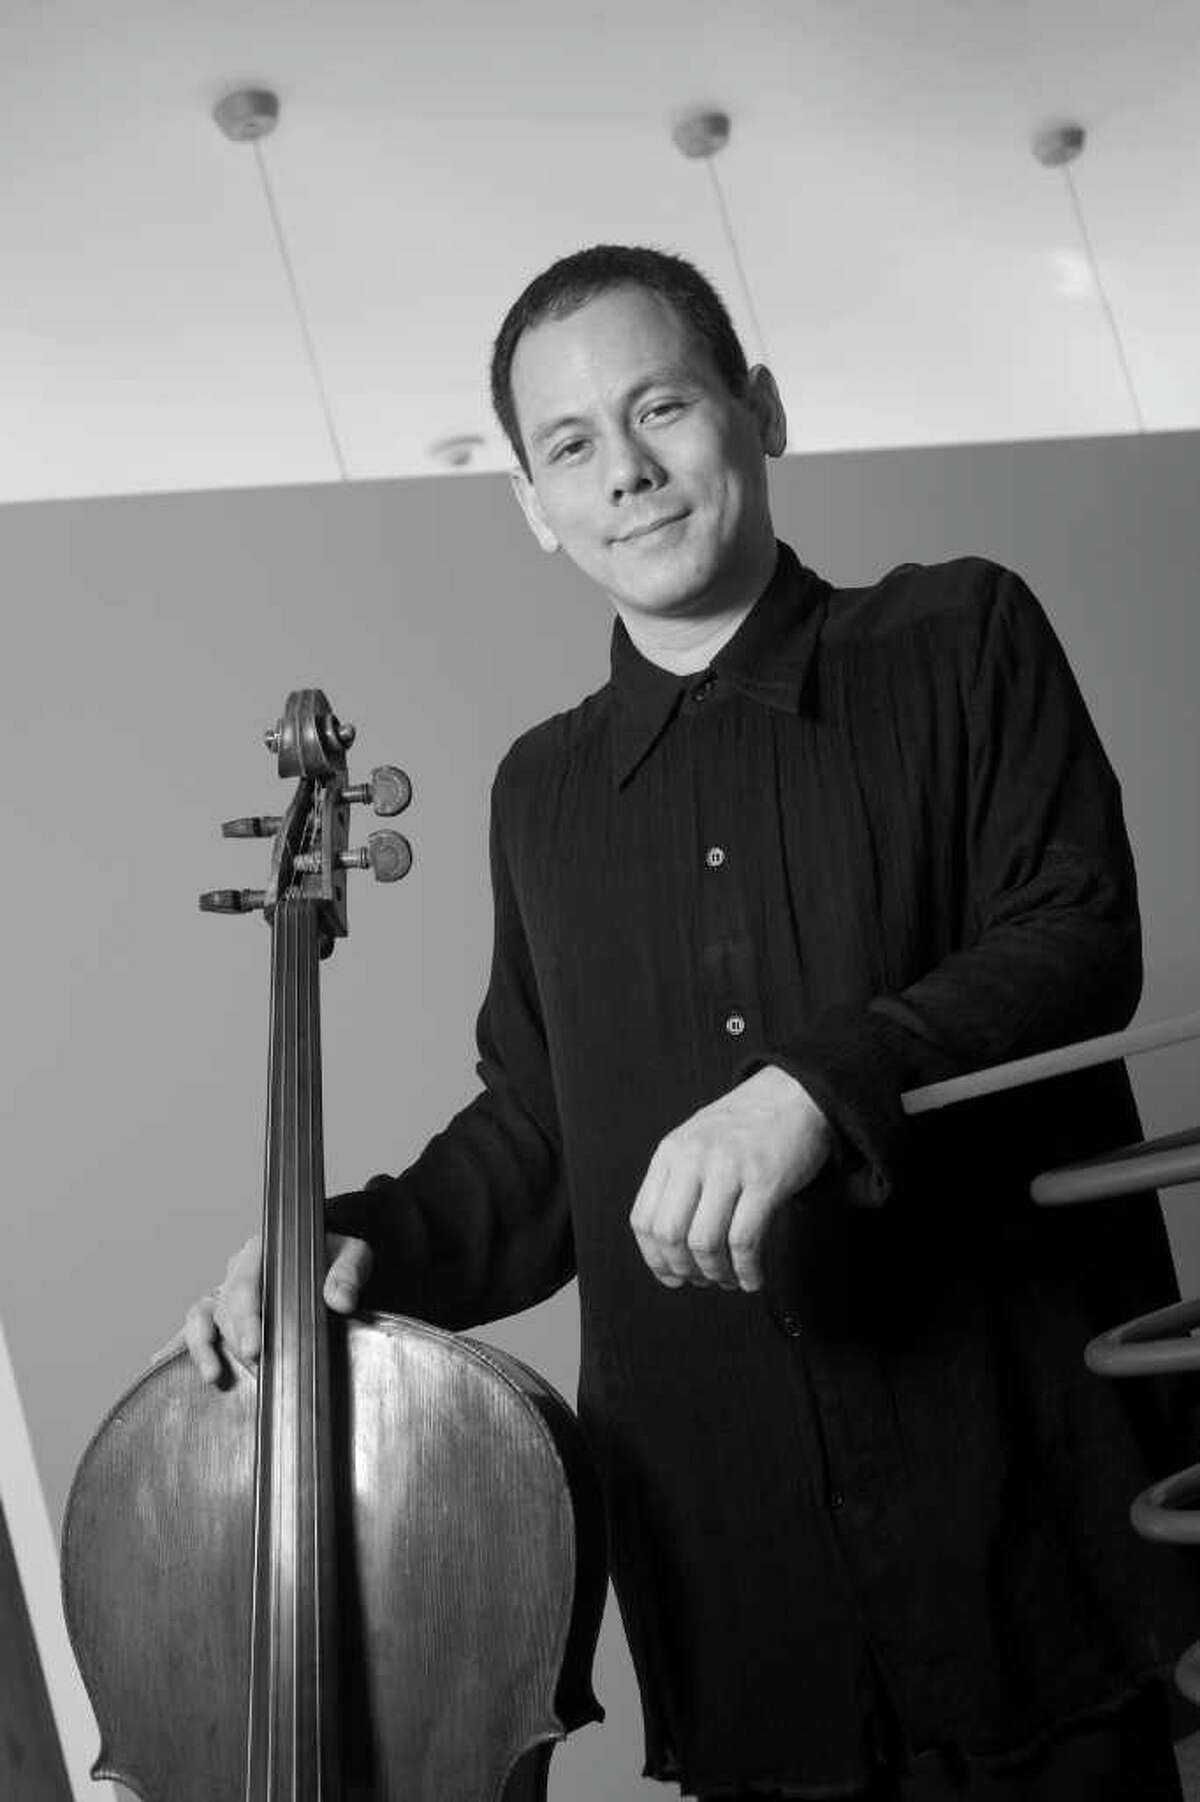 Cellist Bion Tsang, recognized as one of the greatest instrumentalists of his generation, will perform with The Chamber Players of the Greenwich Symphony in the concerts of Nov. 13 and 14.